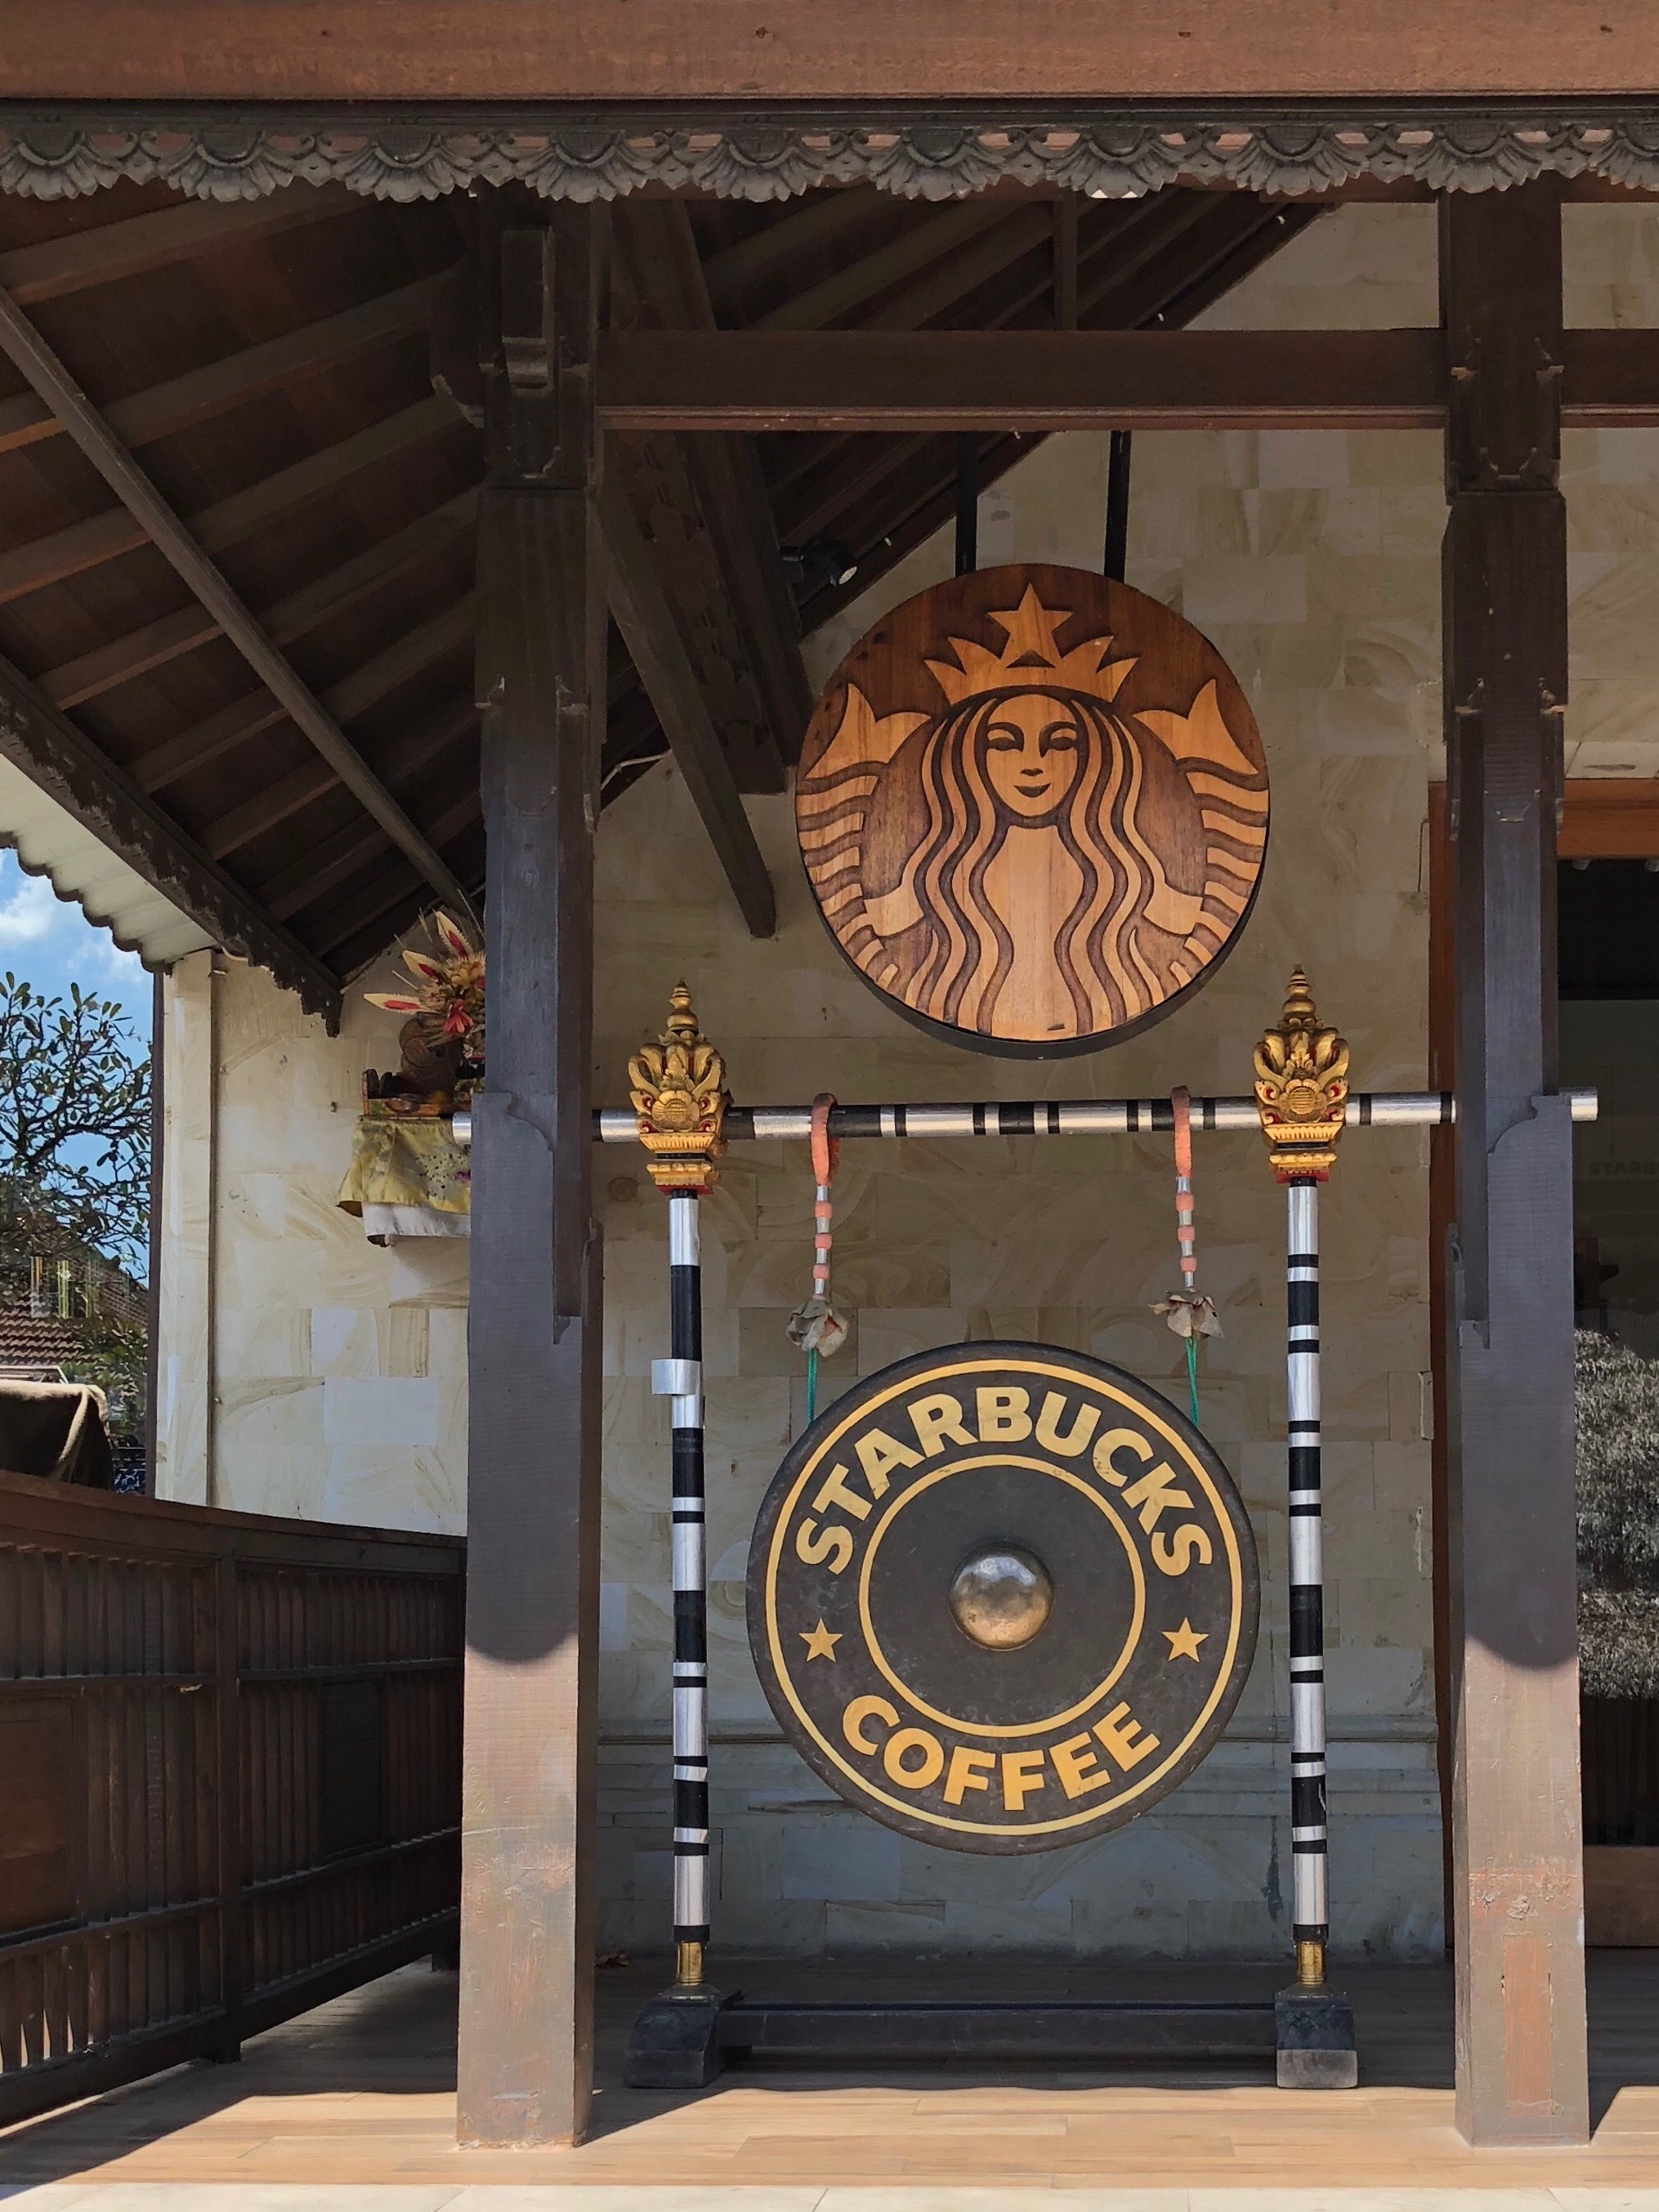 There's a Starbucks right in front of the temple. Grab a venti iced latte on the way out!